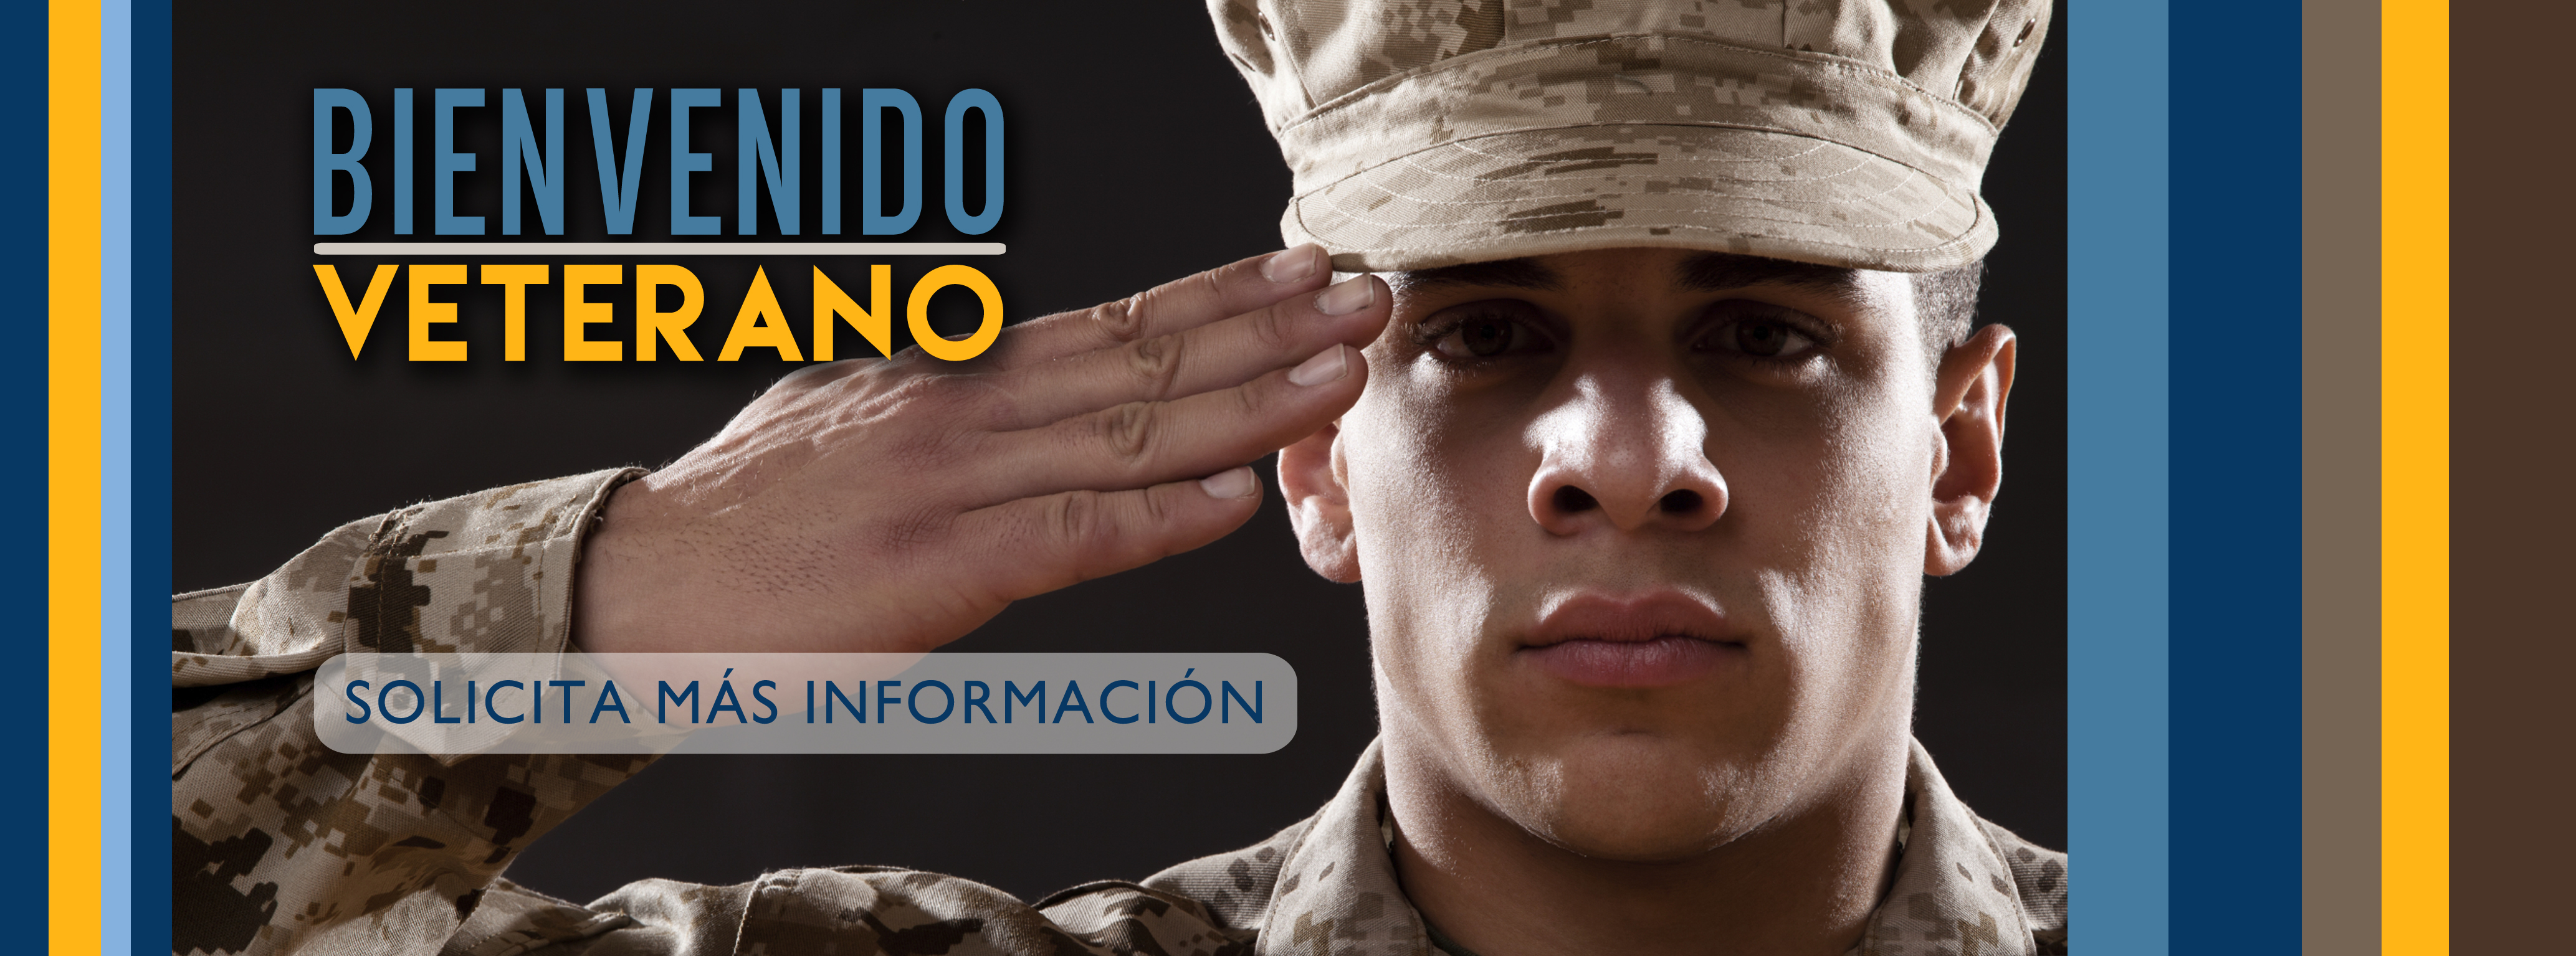 HOME-PAGE-BANNER-veterano